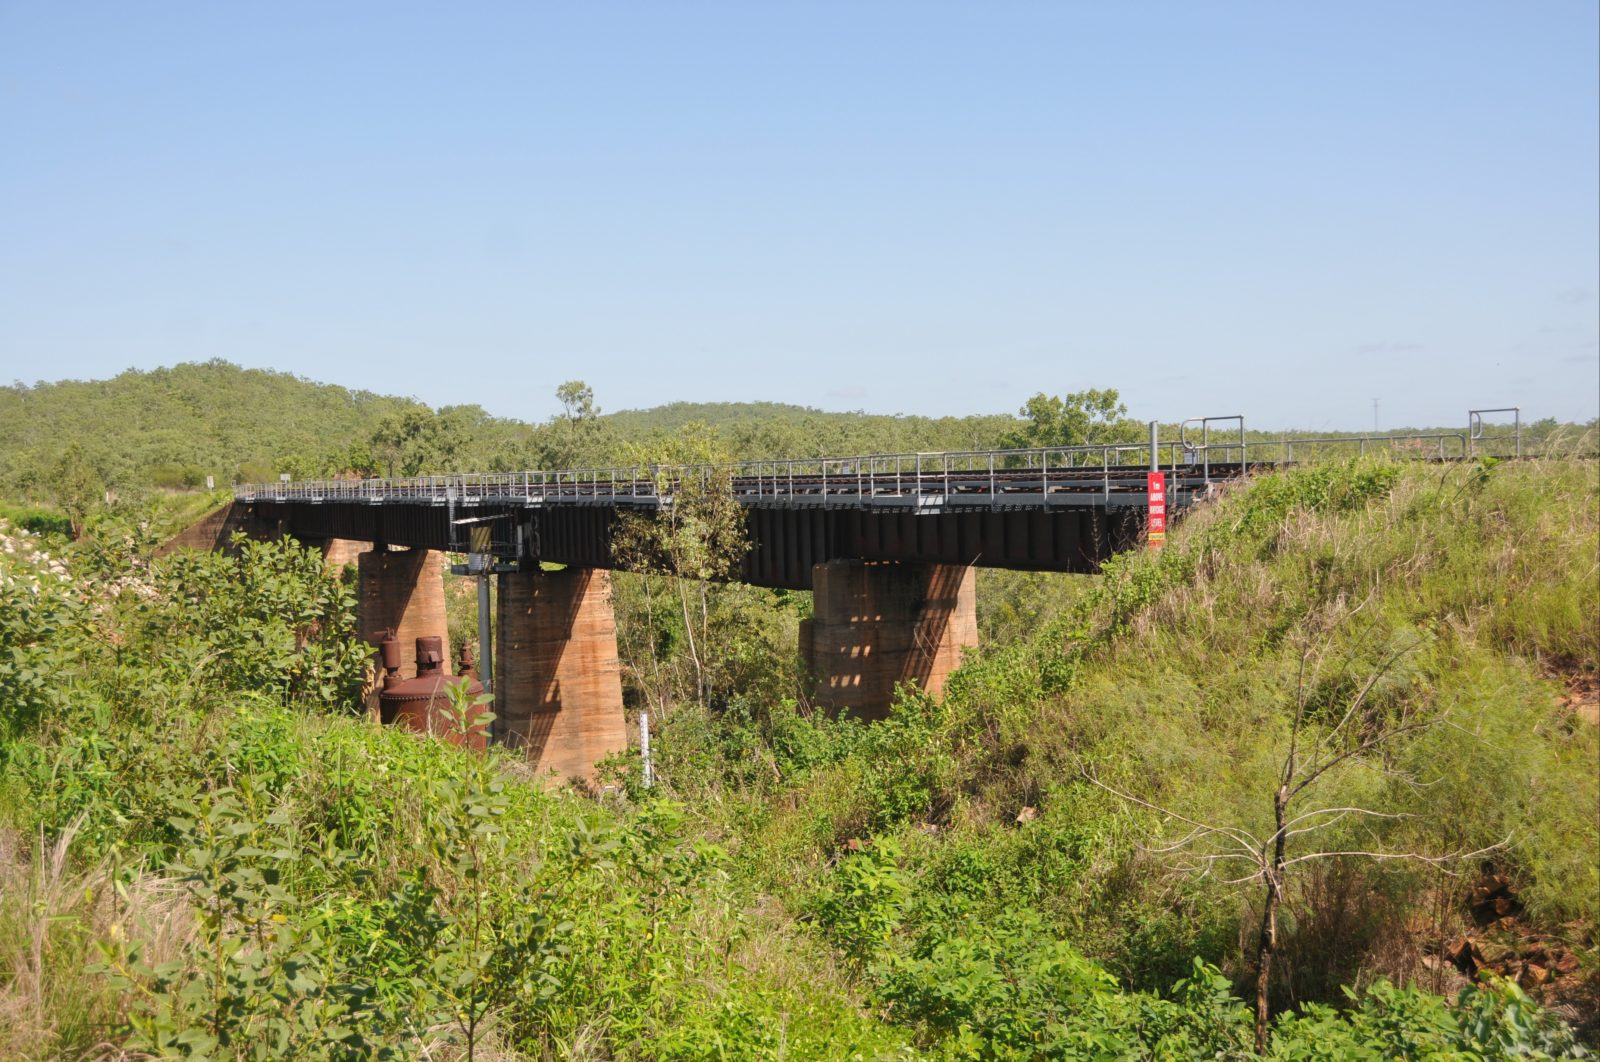 Railway Bridge and boiler, looking north, the Stuart Highway is to the left of the image.